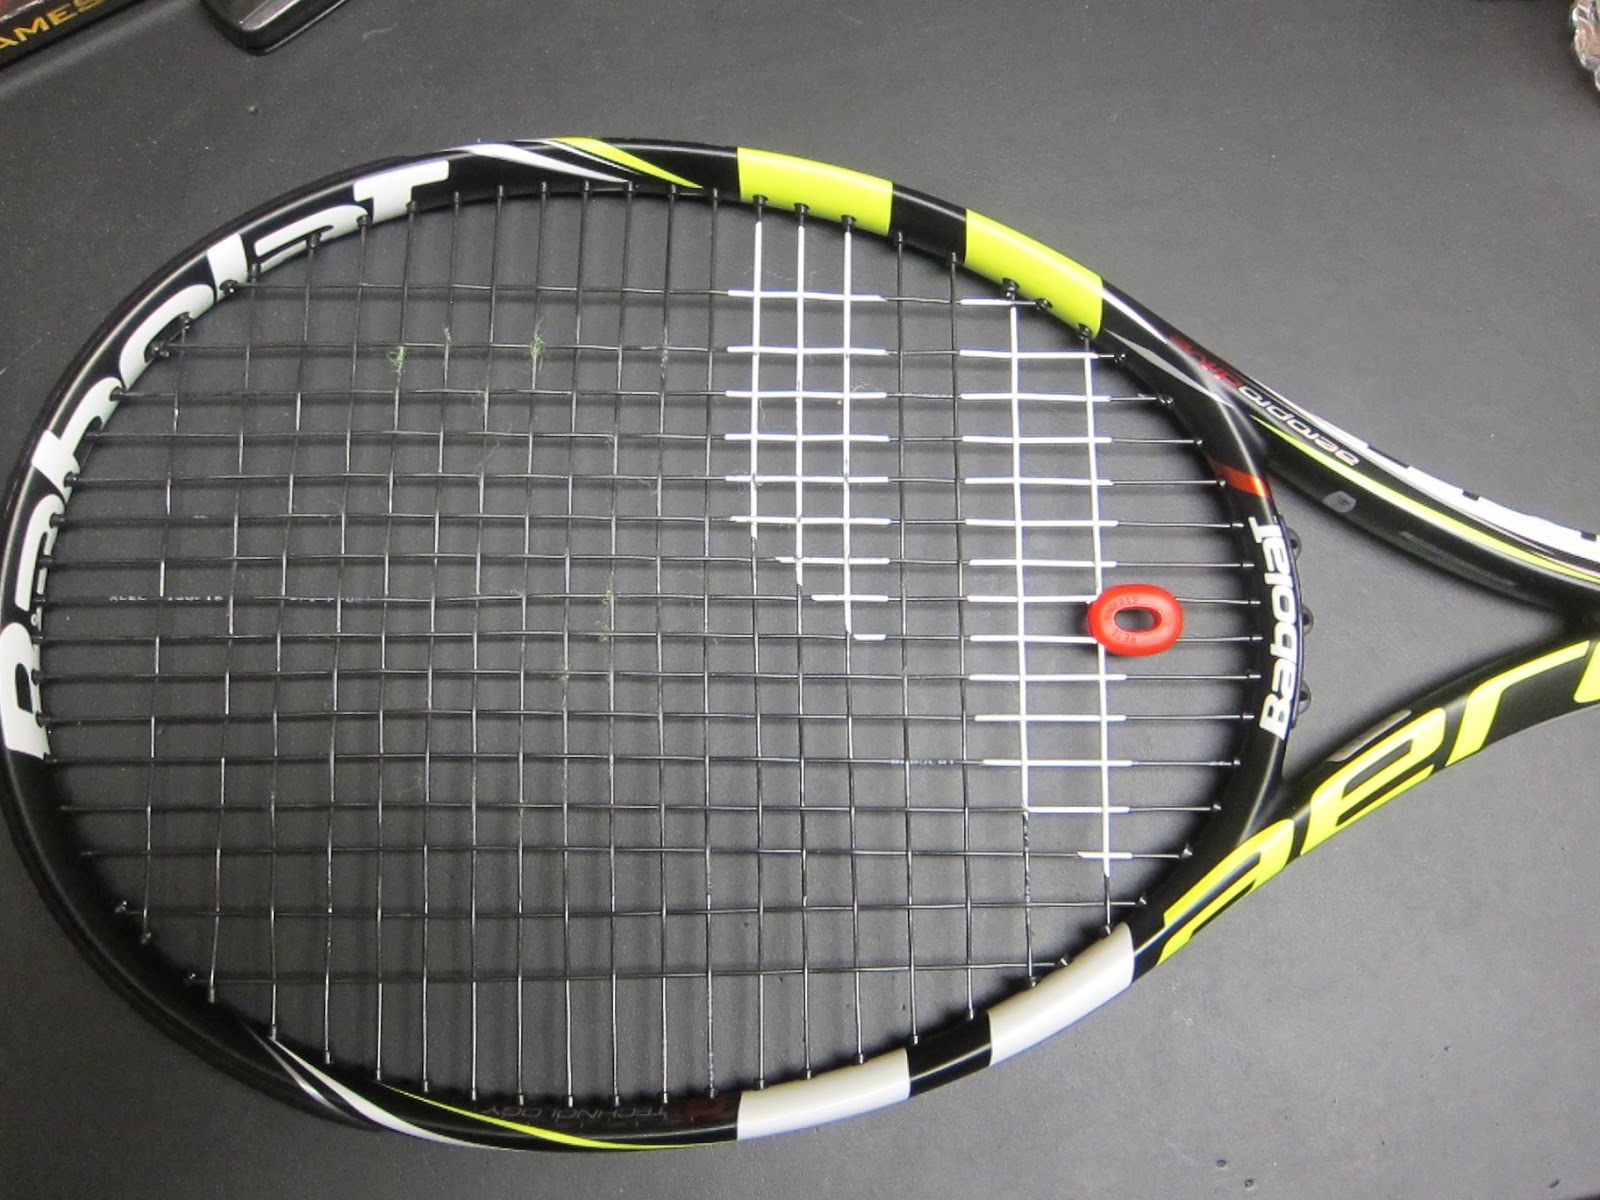 babolat aeropro drive gt rafa 39 s new babolat racket pics preview and video review tennis. Black Bedroom Furniture Sets. Home Design Ideas